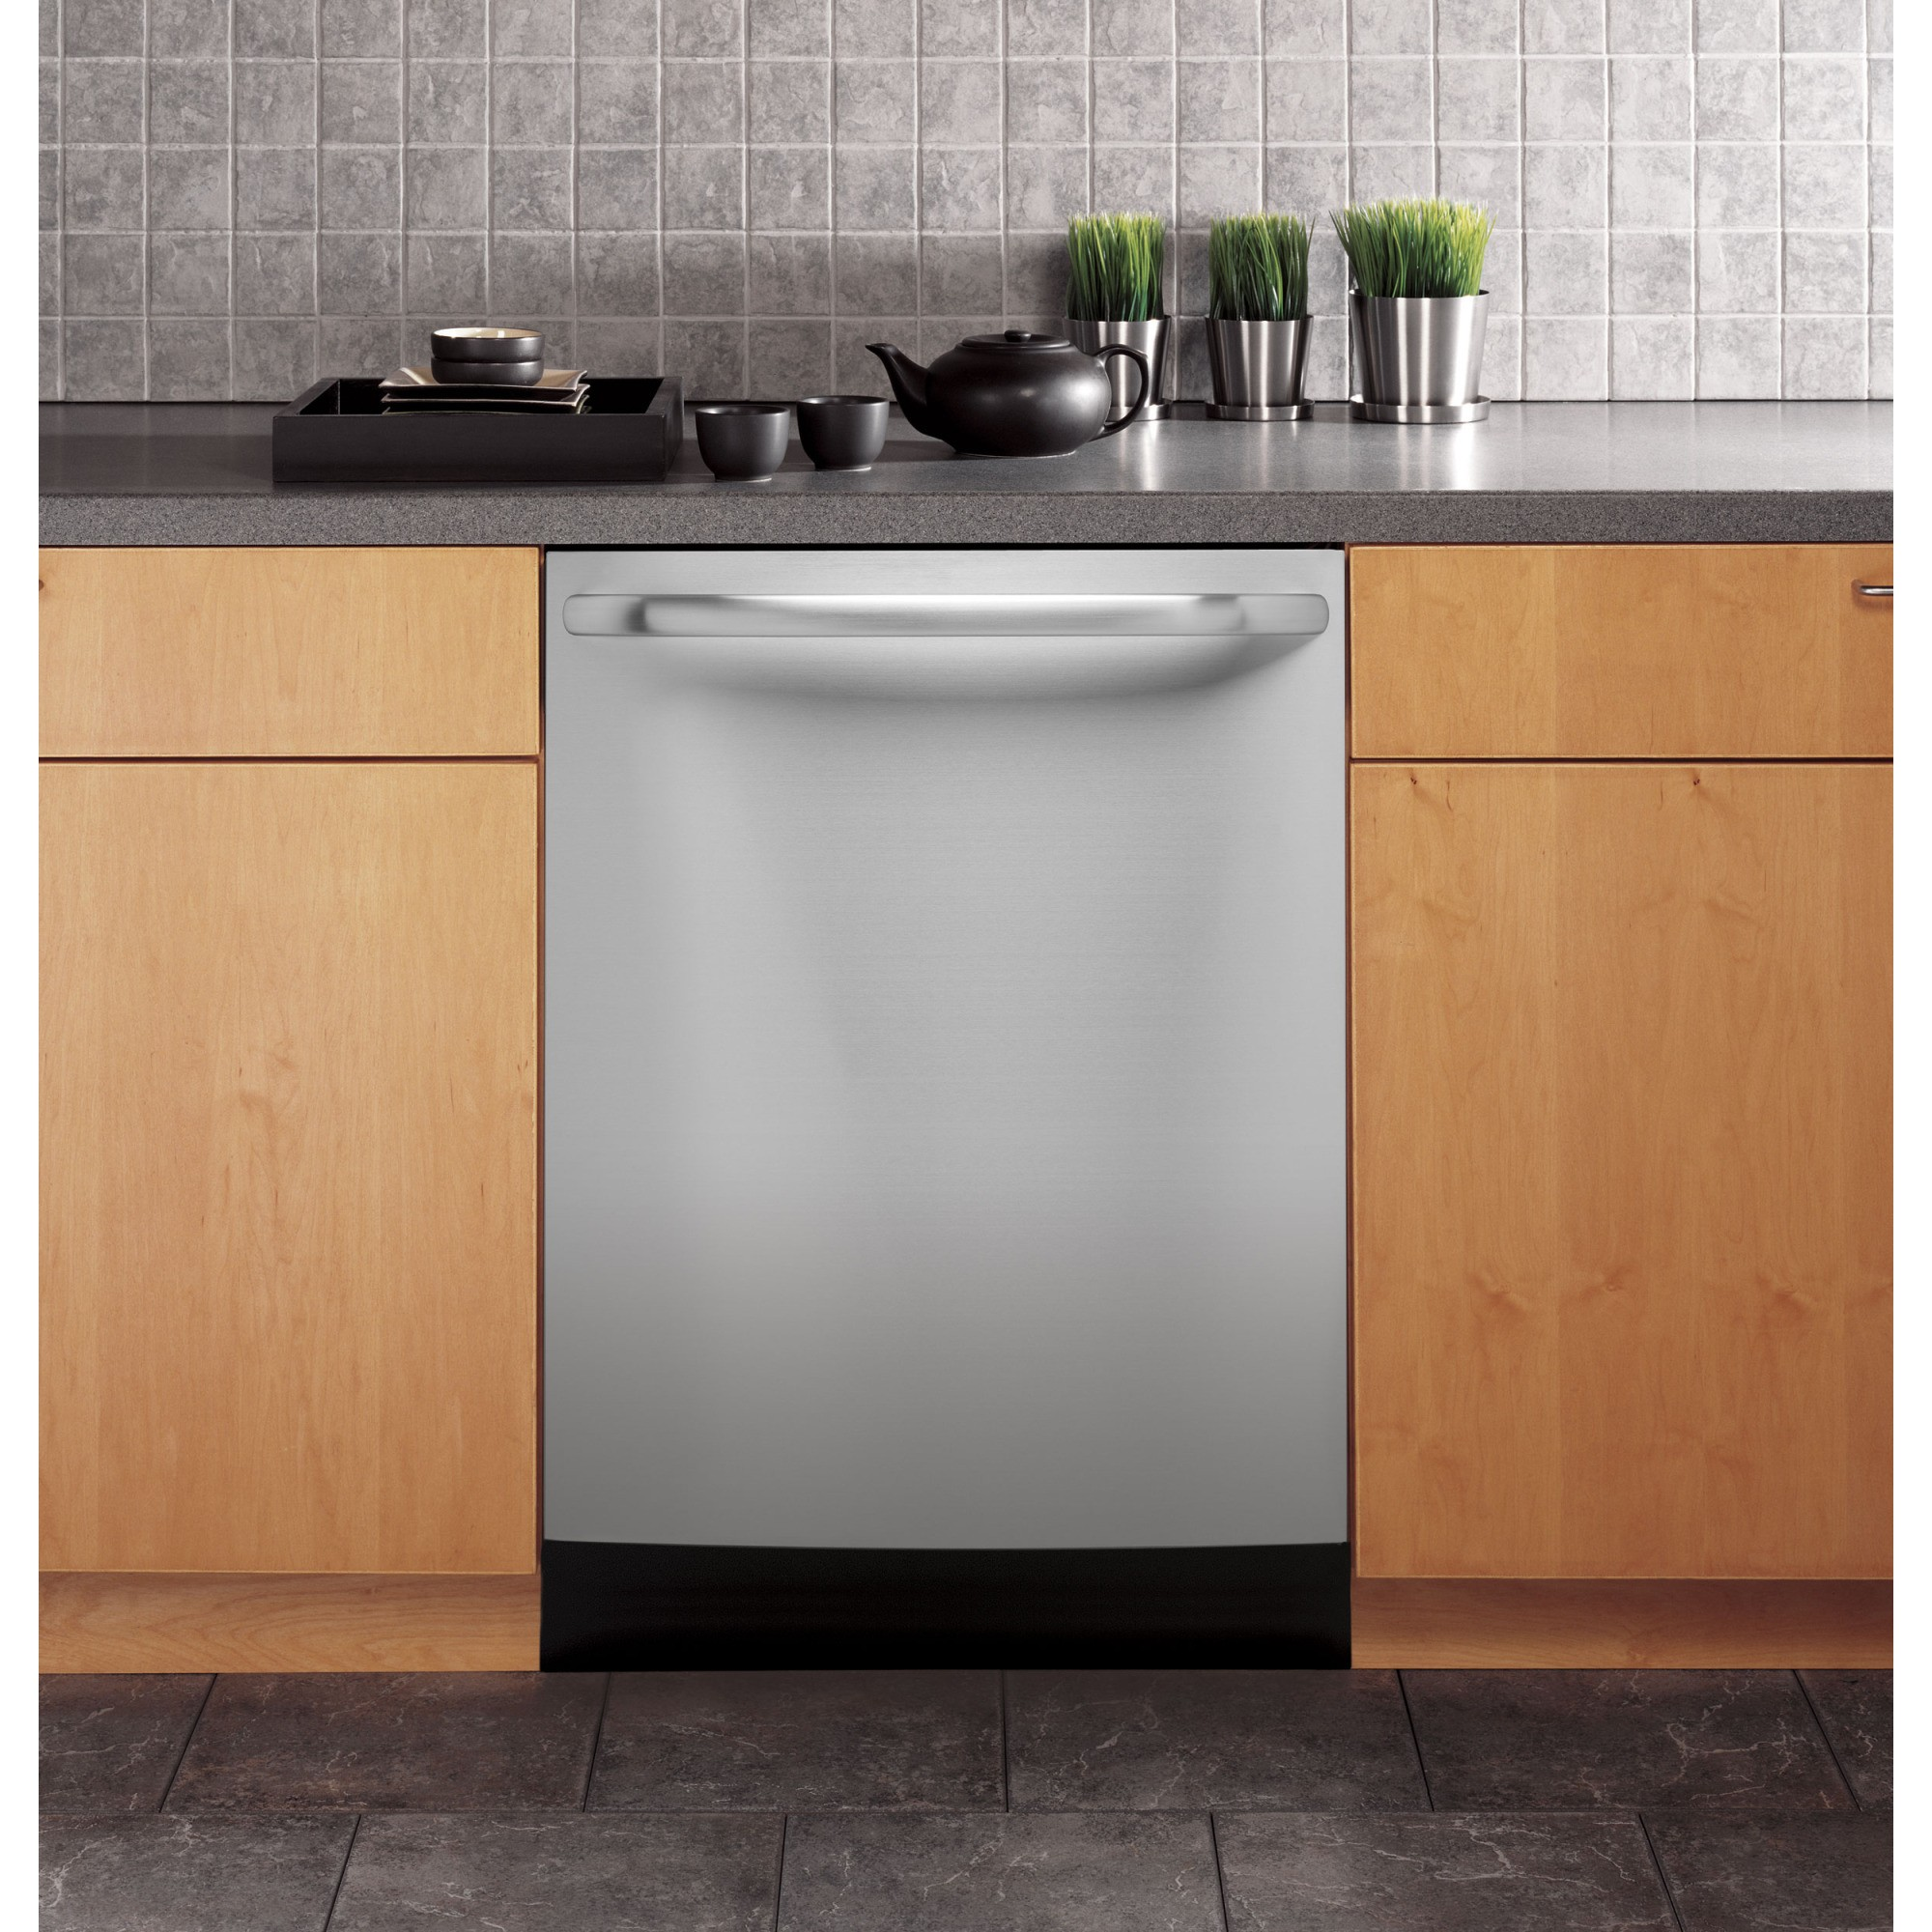 smeg built in dishwasher manual